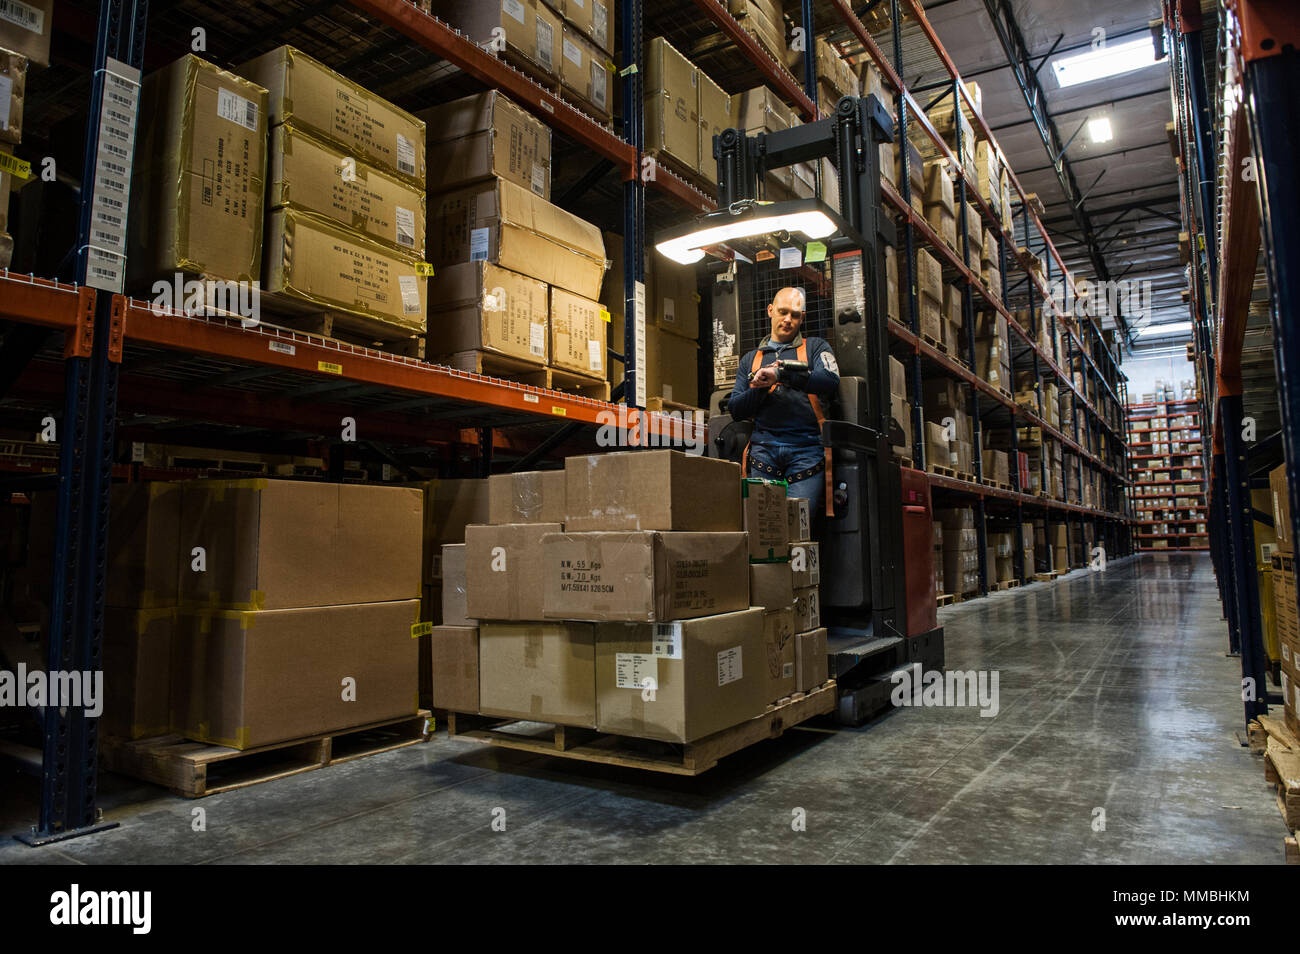 Warehouse worker wearing a safety harness while opeating a motorized stock picker in an aisle between large racks of cardboard boxes holding product o - Stock Image